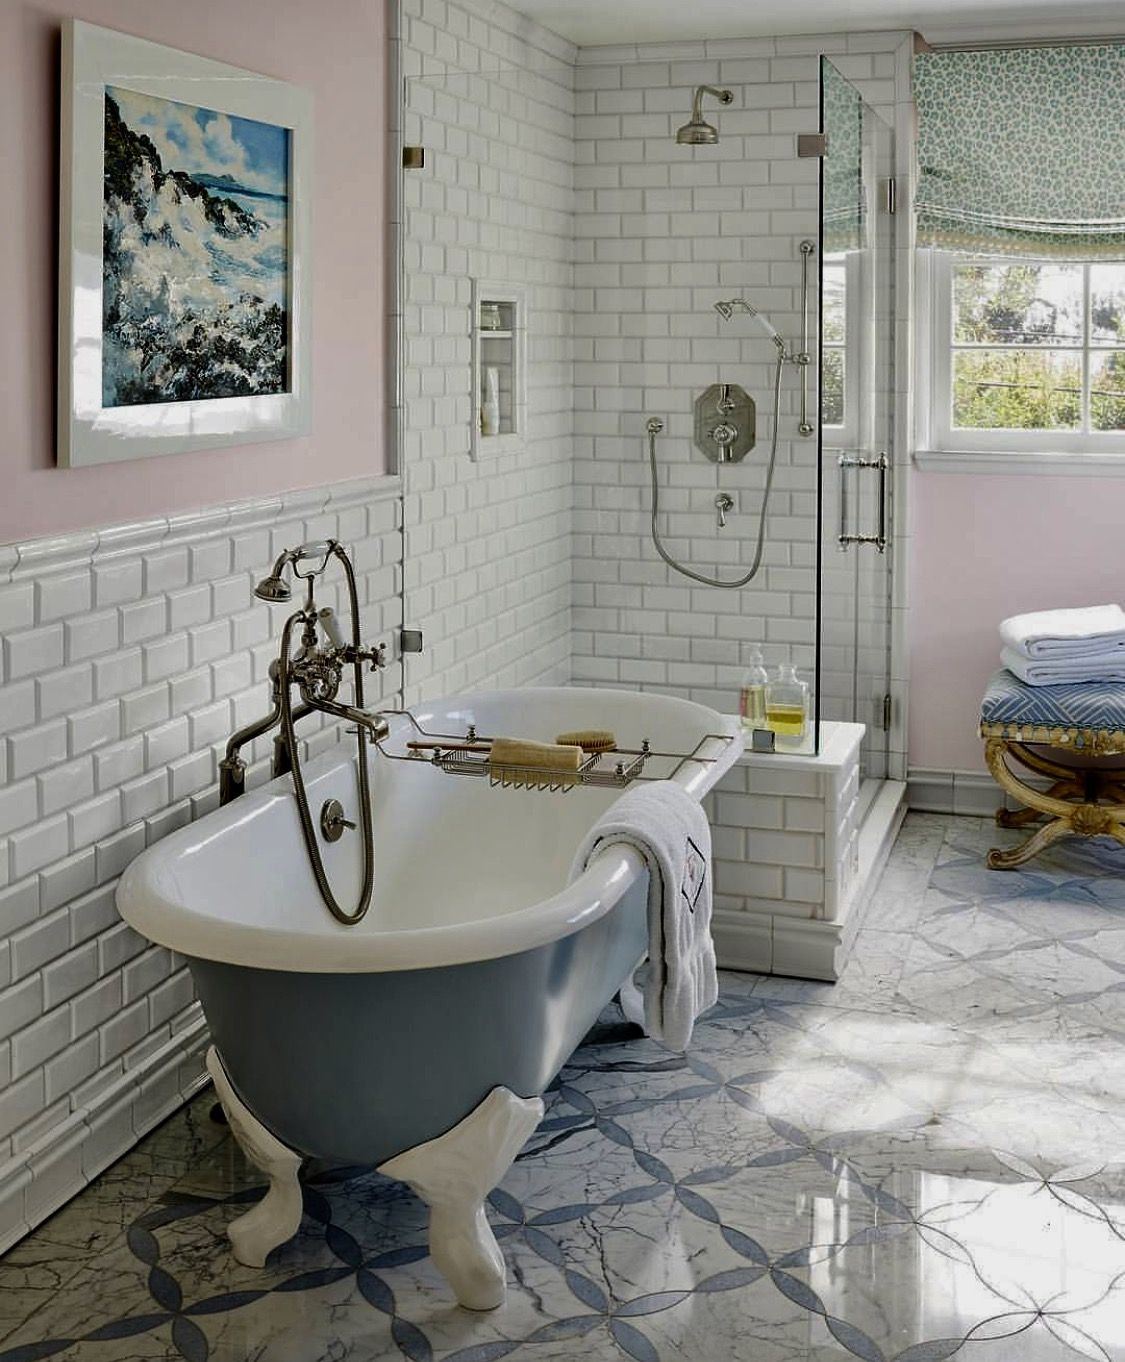 Pin by Anna Tausend on :: CHAMPAGNE PINK ::  Floor tile design